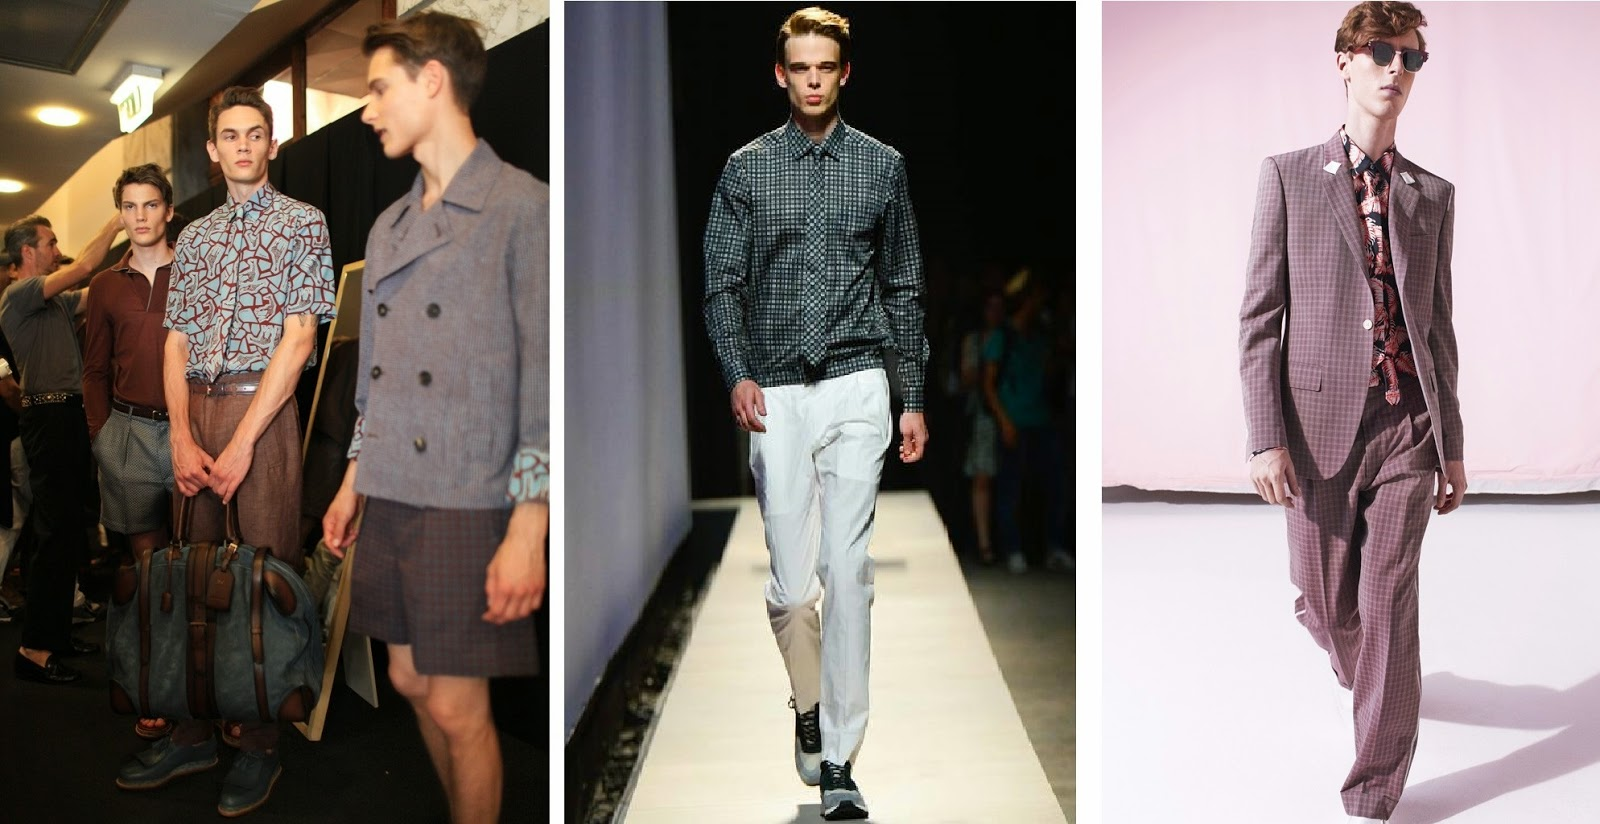 Spring 2015, Florentino, Z Zegna, Marc Jacobs, Salvatore Ferragamo, Suits and Shirts,